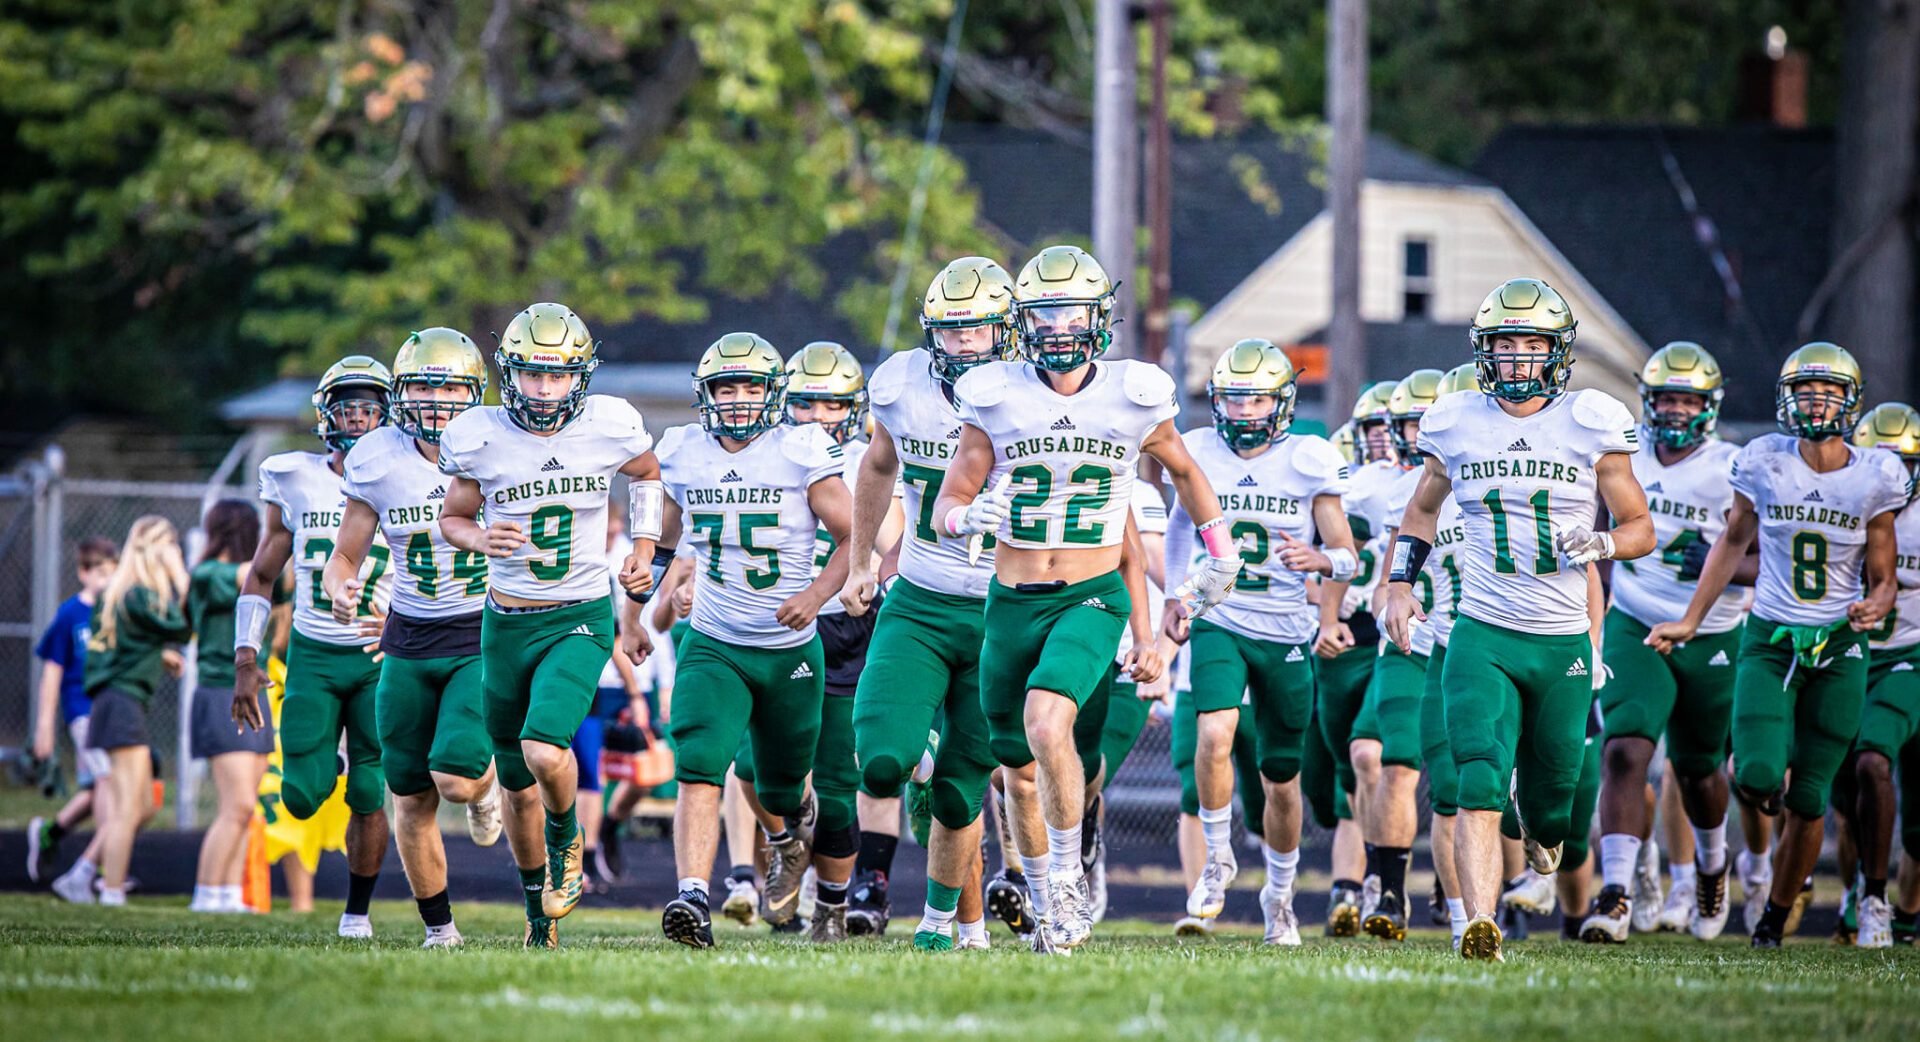 Muskegon Catholic Central breaks into 500 Win Club, tops Muskegon Heights